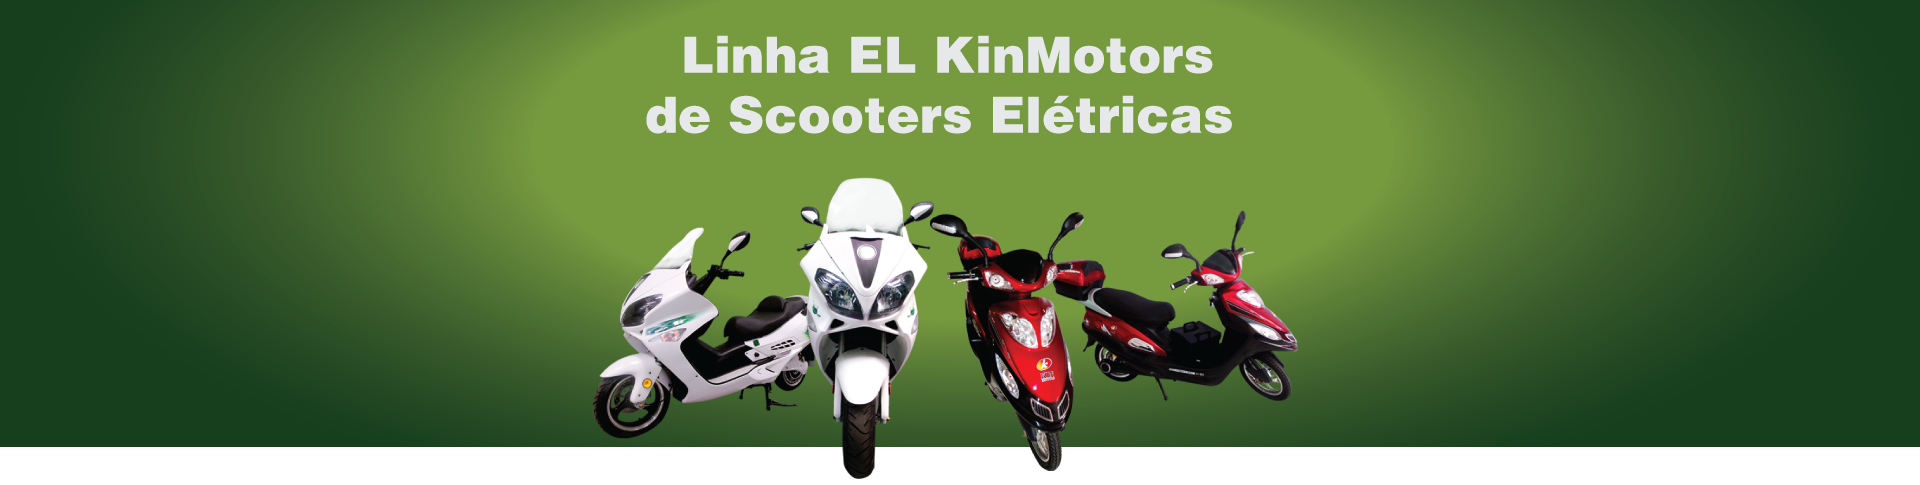 Scooter elétricas kin motors slide 1